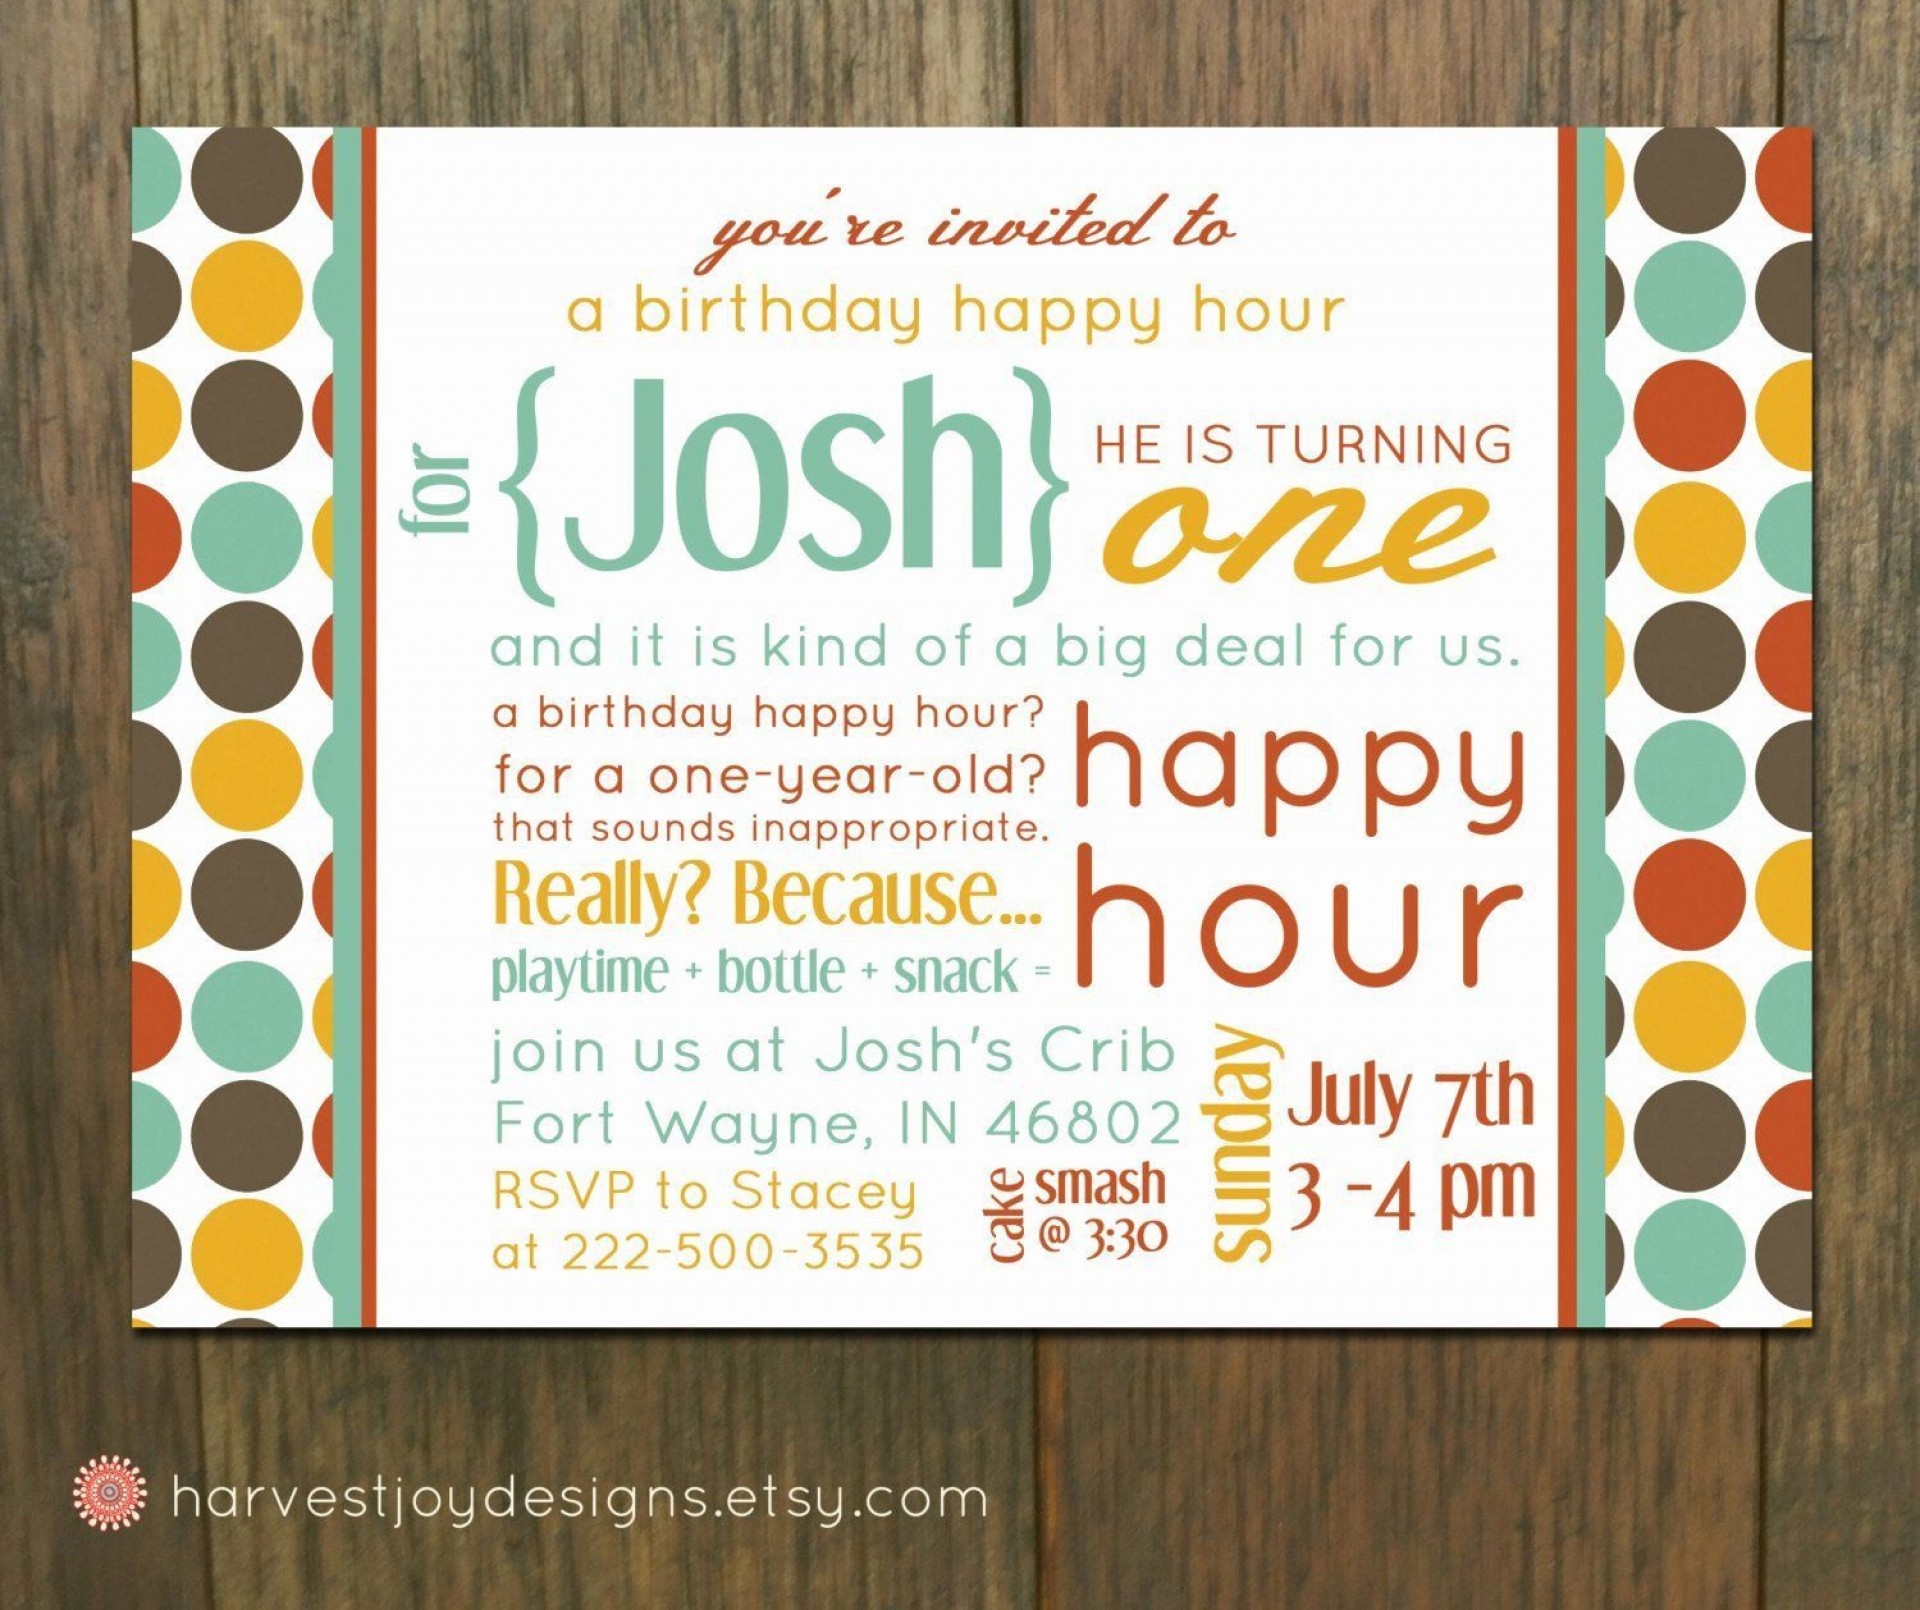 002 Magnificent Happy Hour Invitation Template High Resolution  Templates Free Word Farewell1920